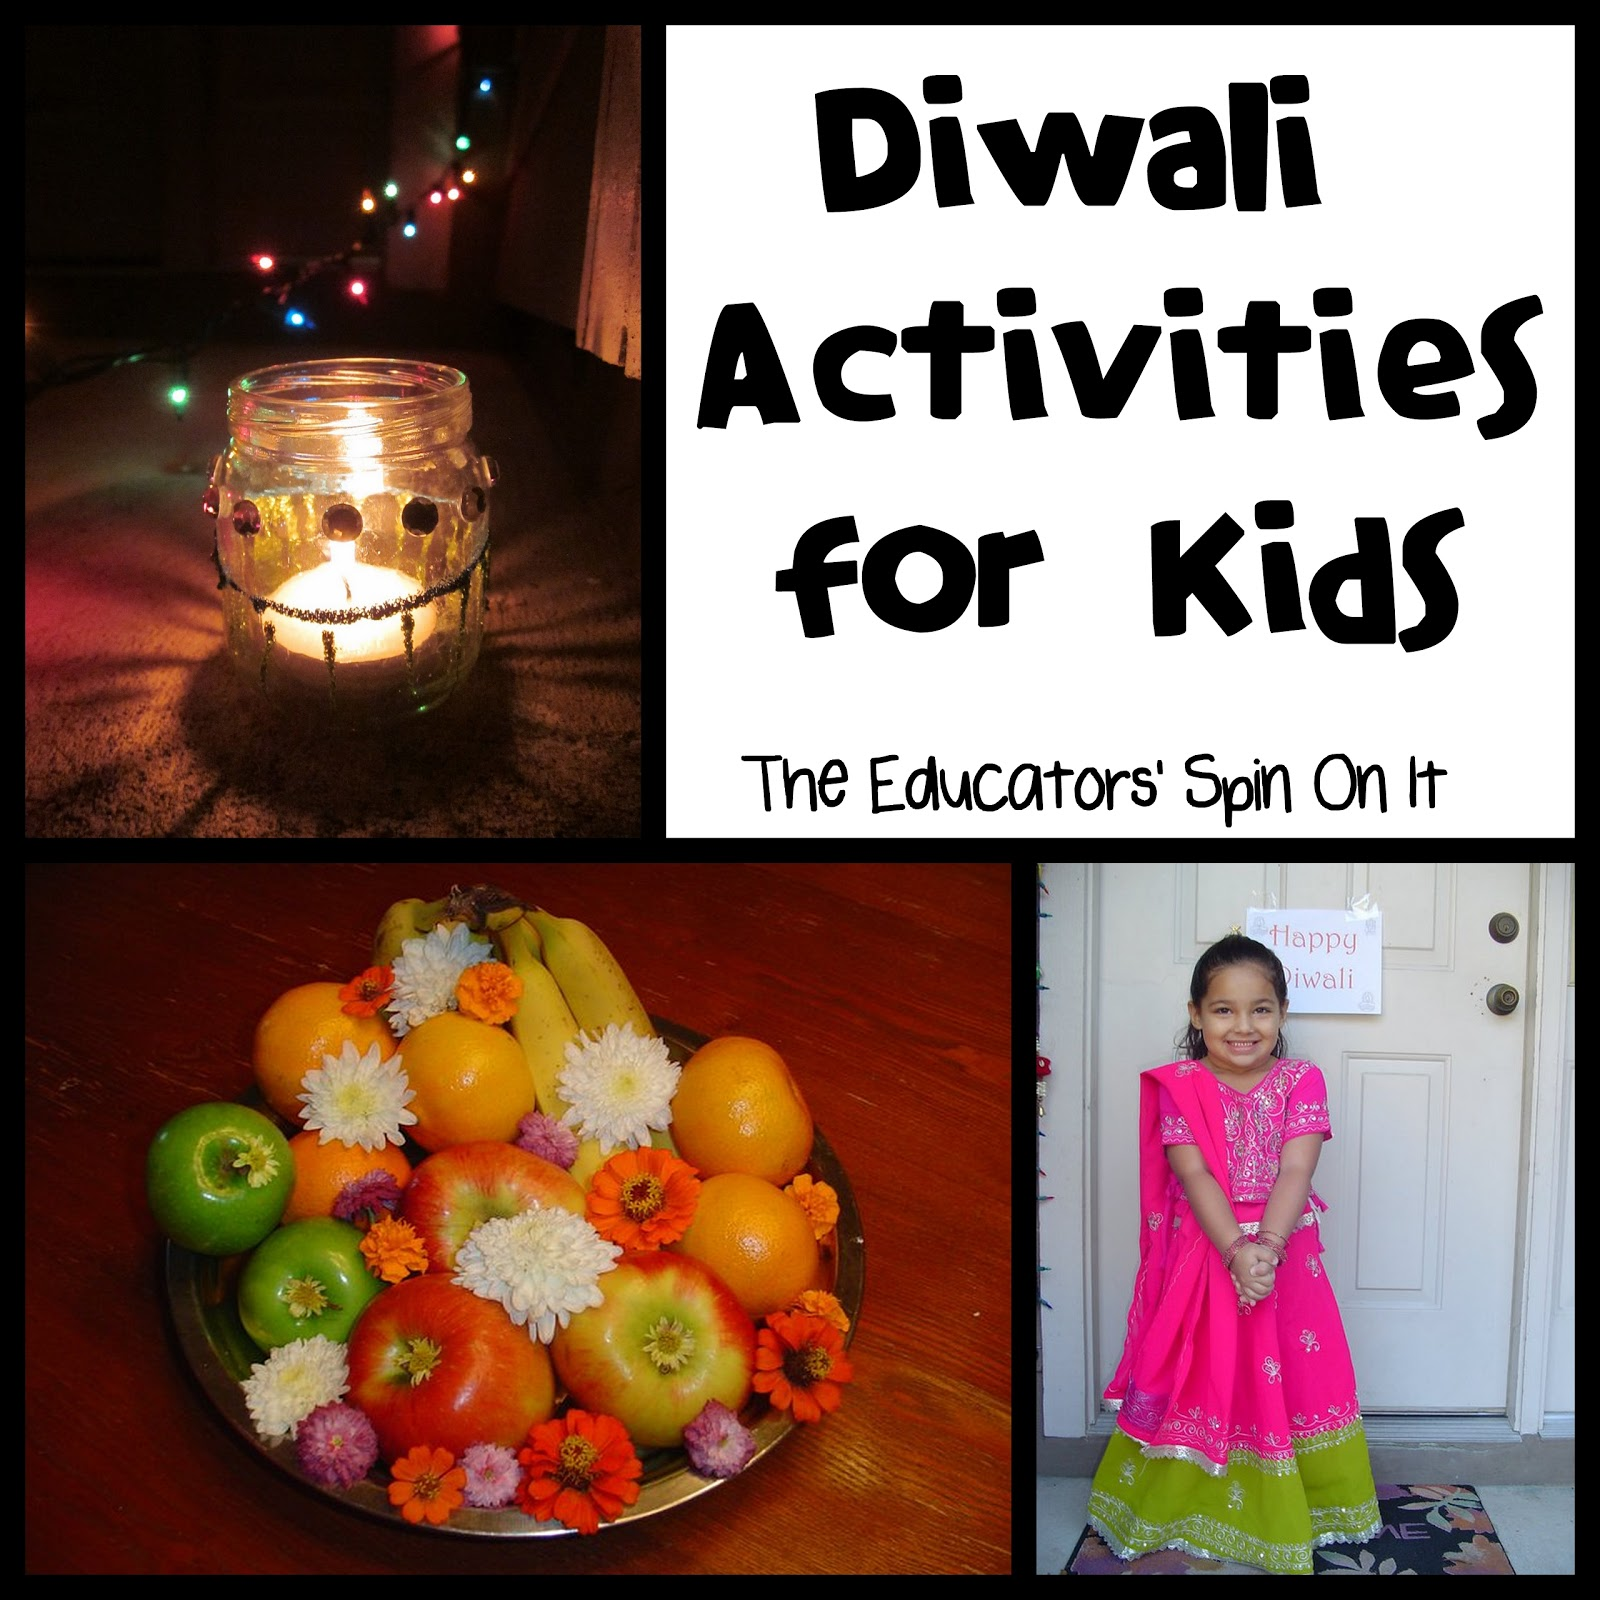 diwali vocabulary words